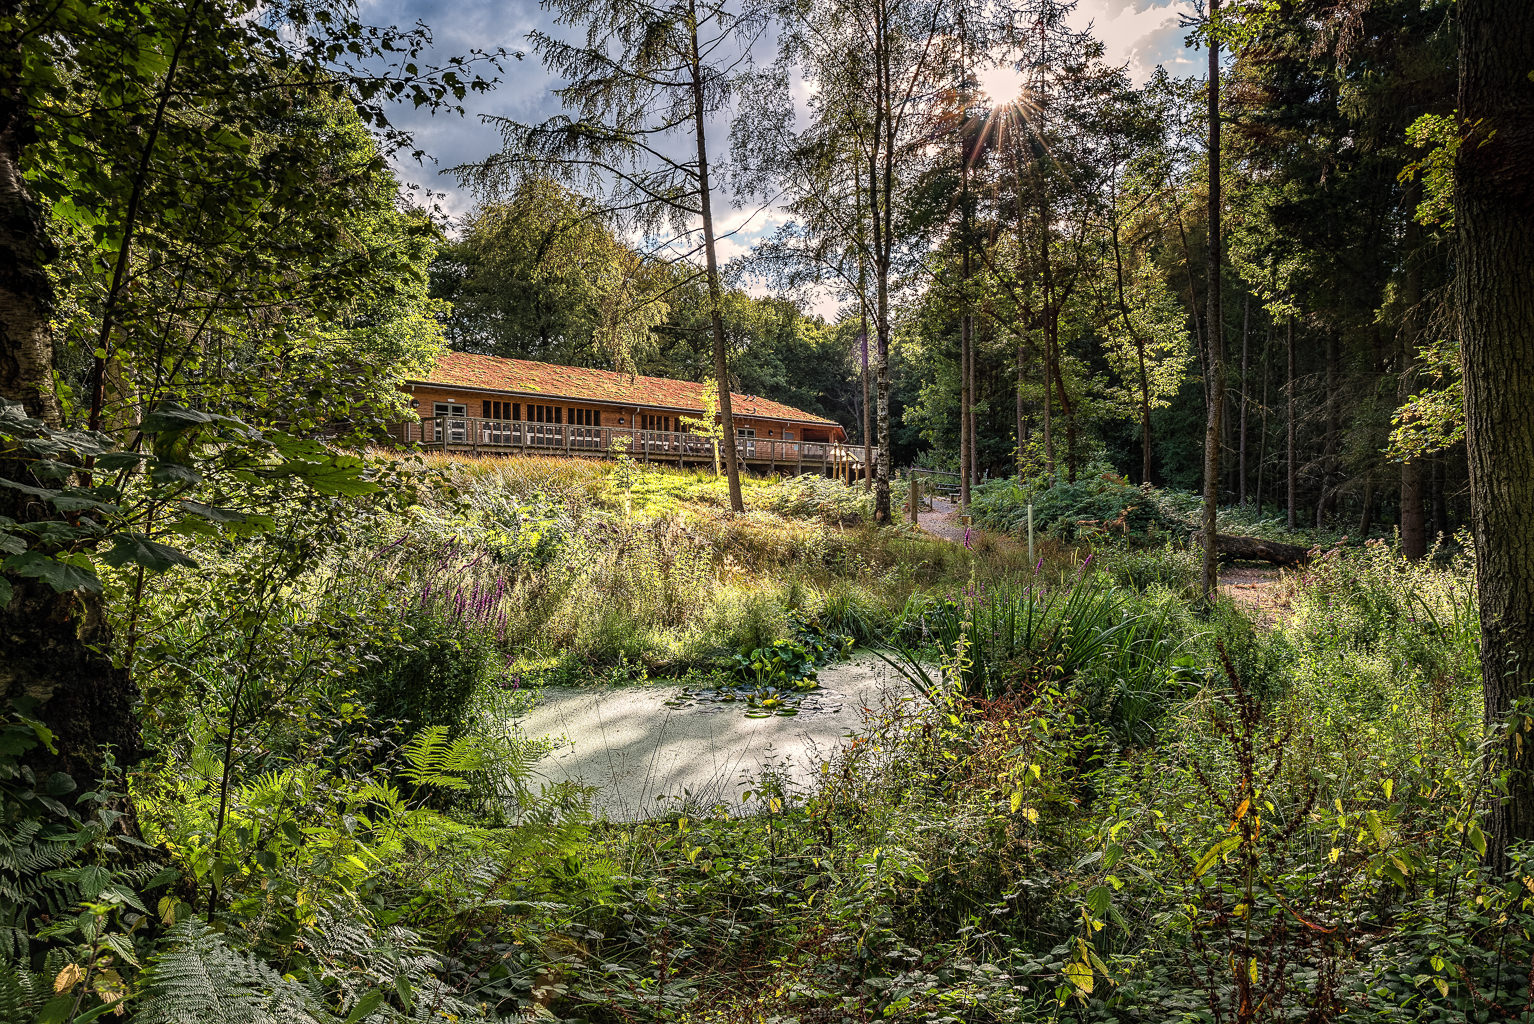 Wyre_Forest_Visitor_Centre.